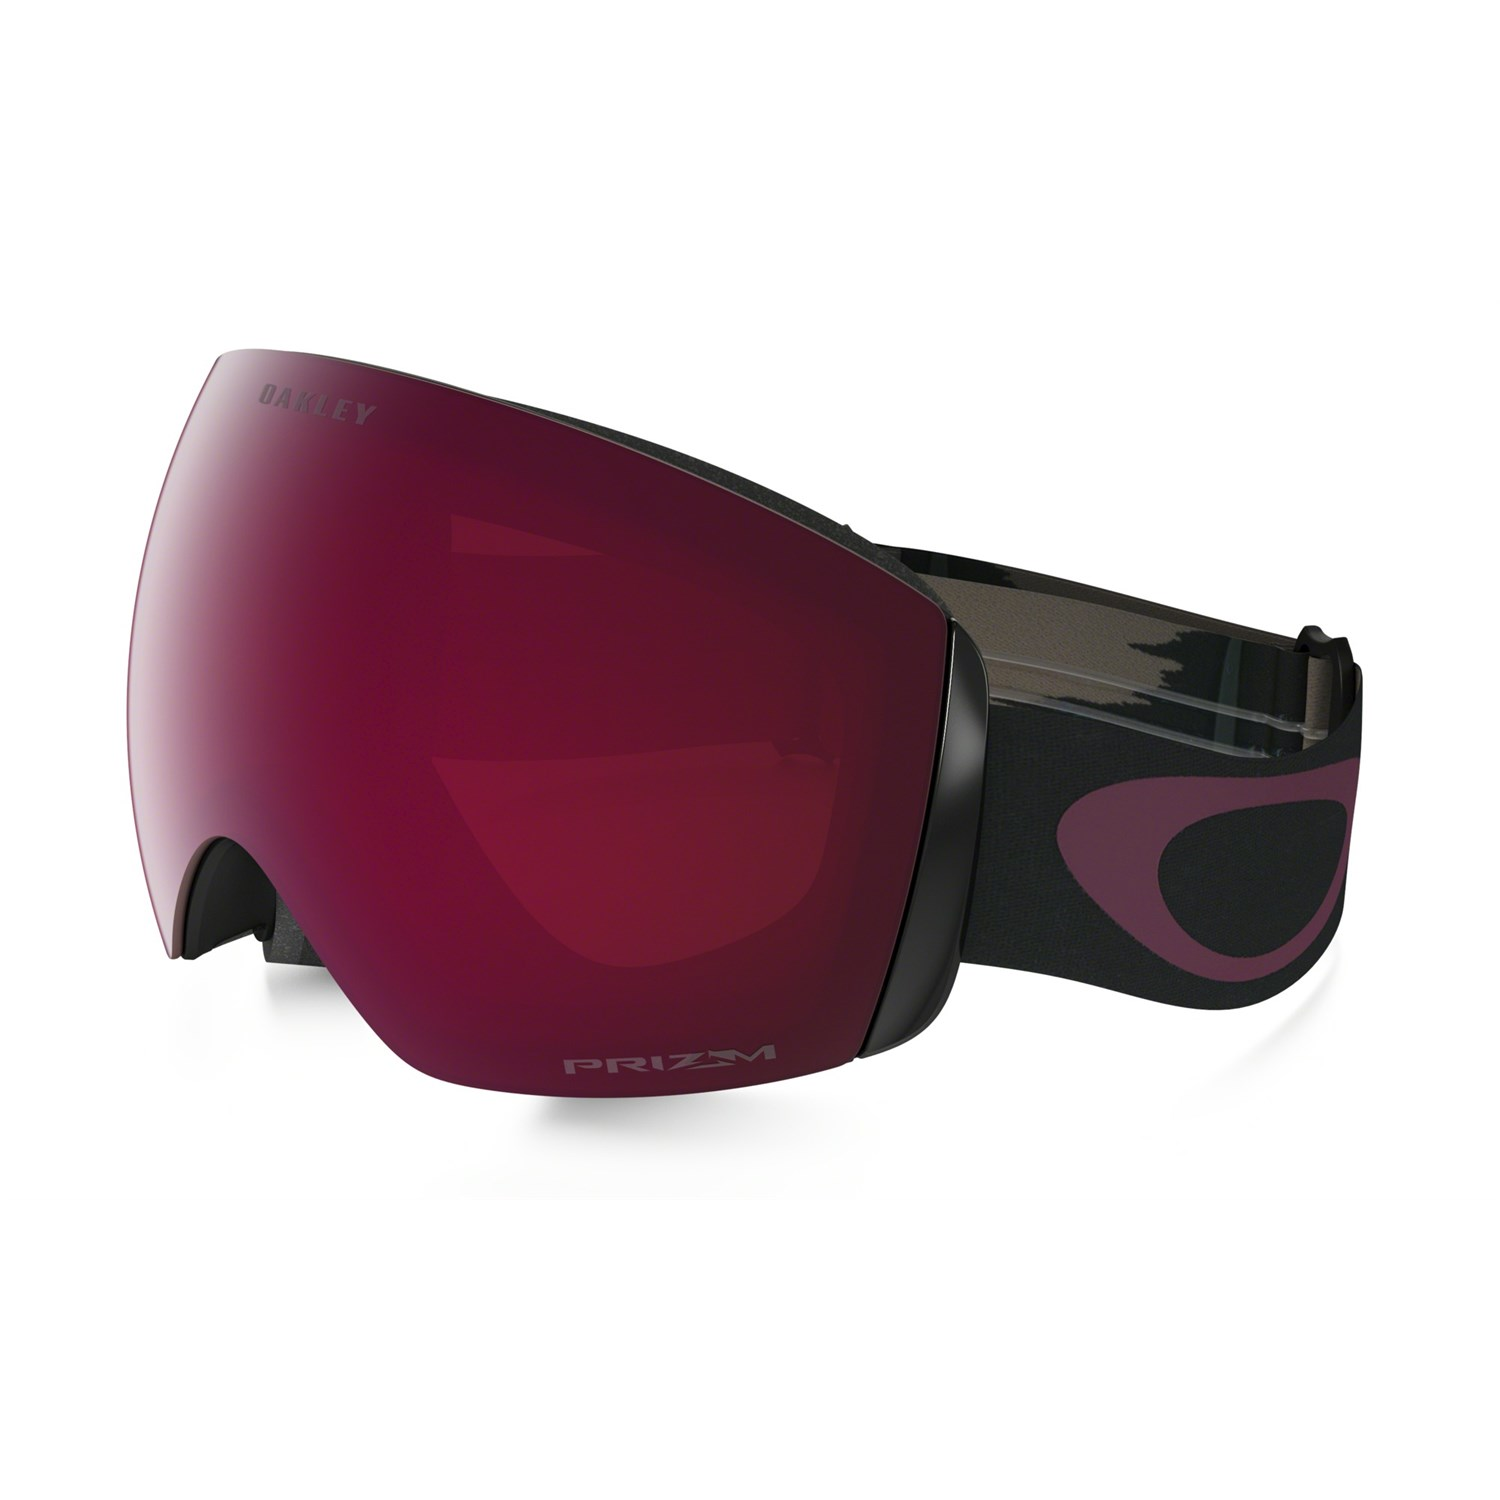 oakley photochromic ski goggles  How to Buy Ski \u0026 Snowboard Goggles: Lens, Size \u0026 Fit Guide